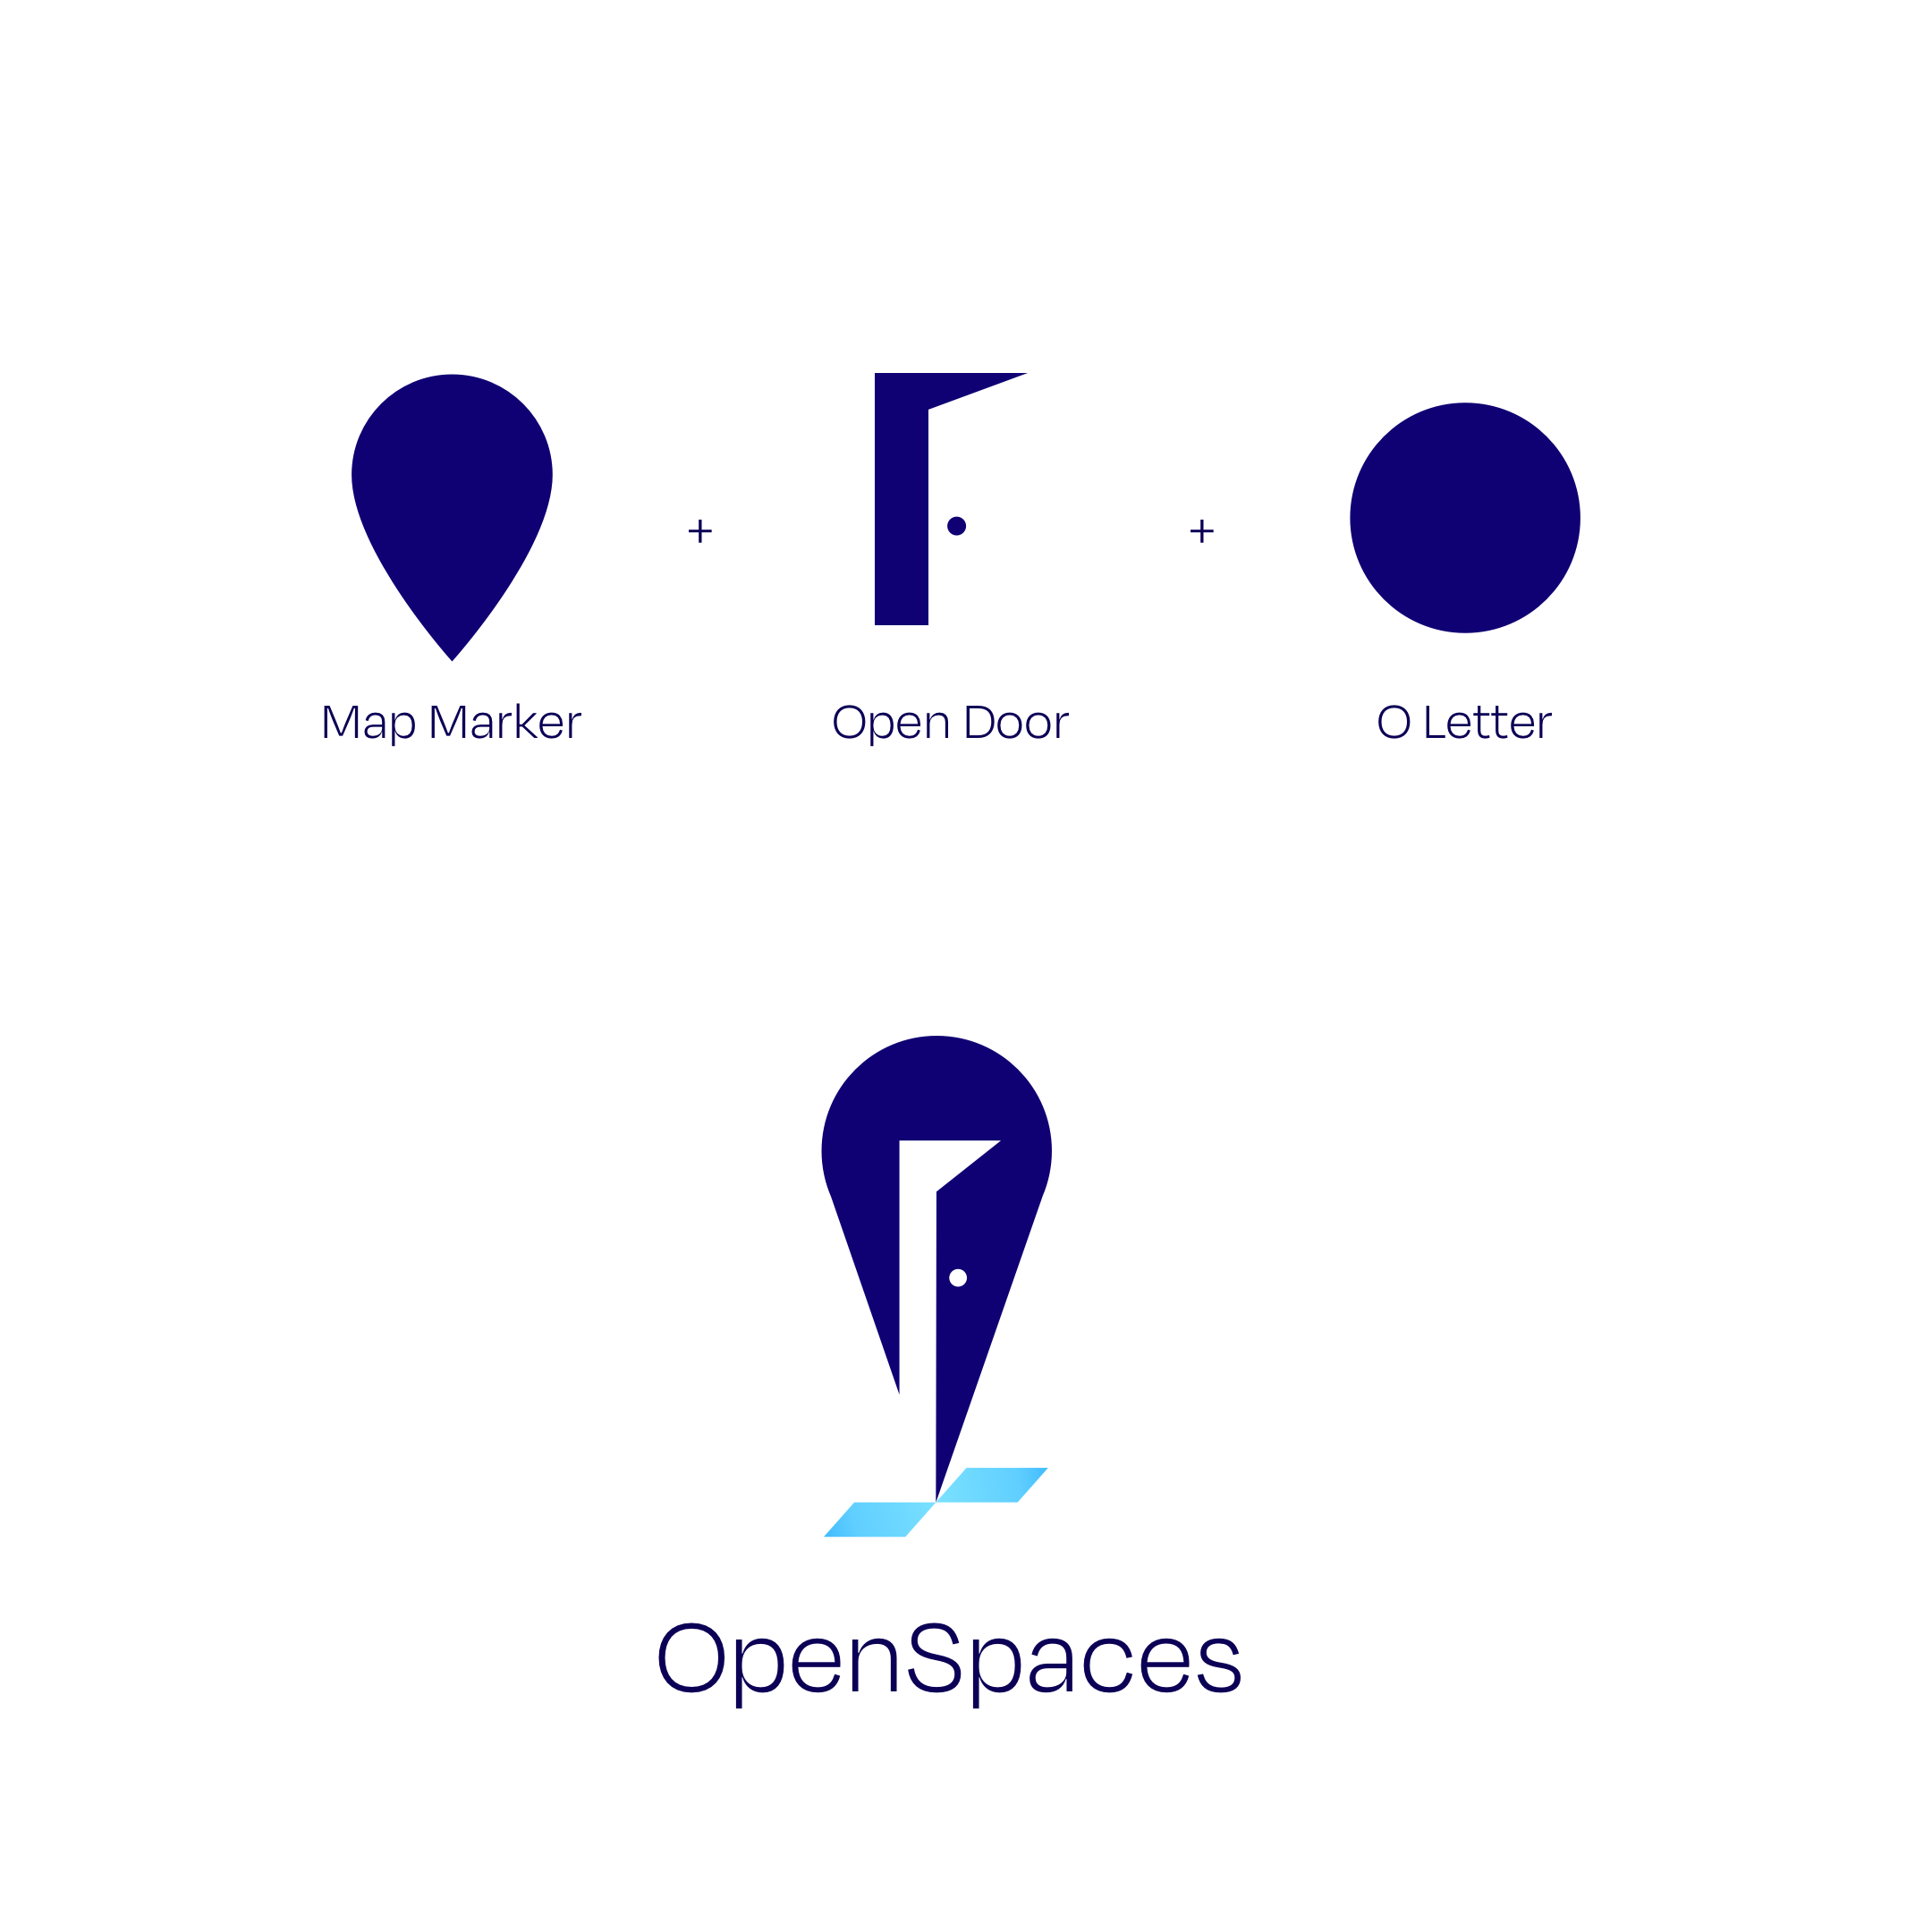 OpenSpaces App - UX Case Study